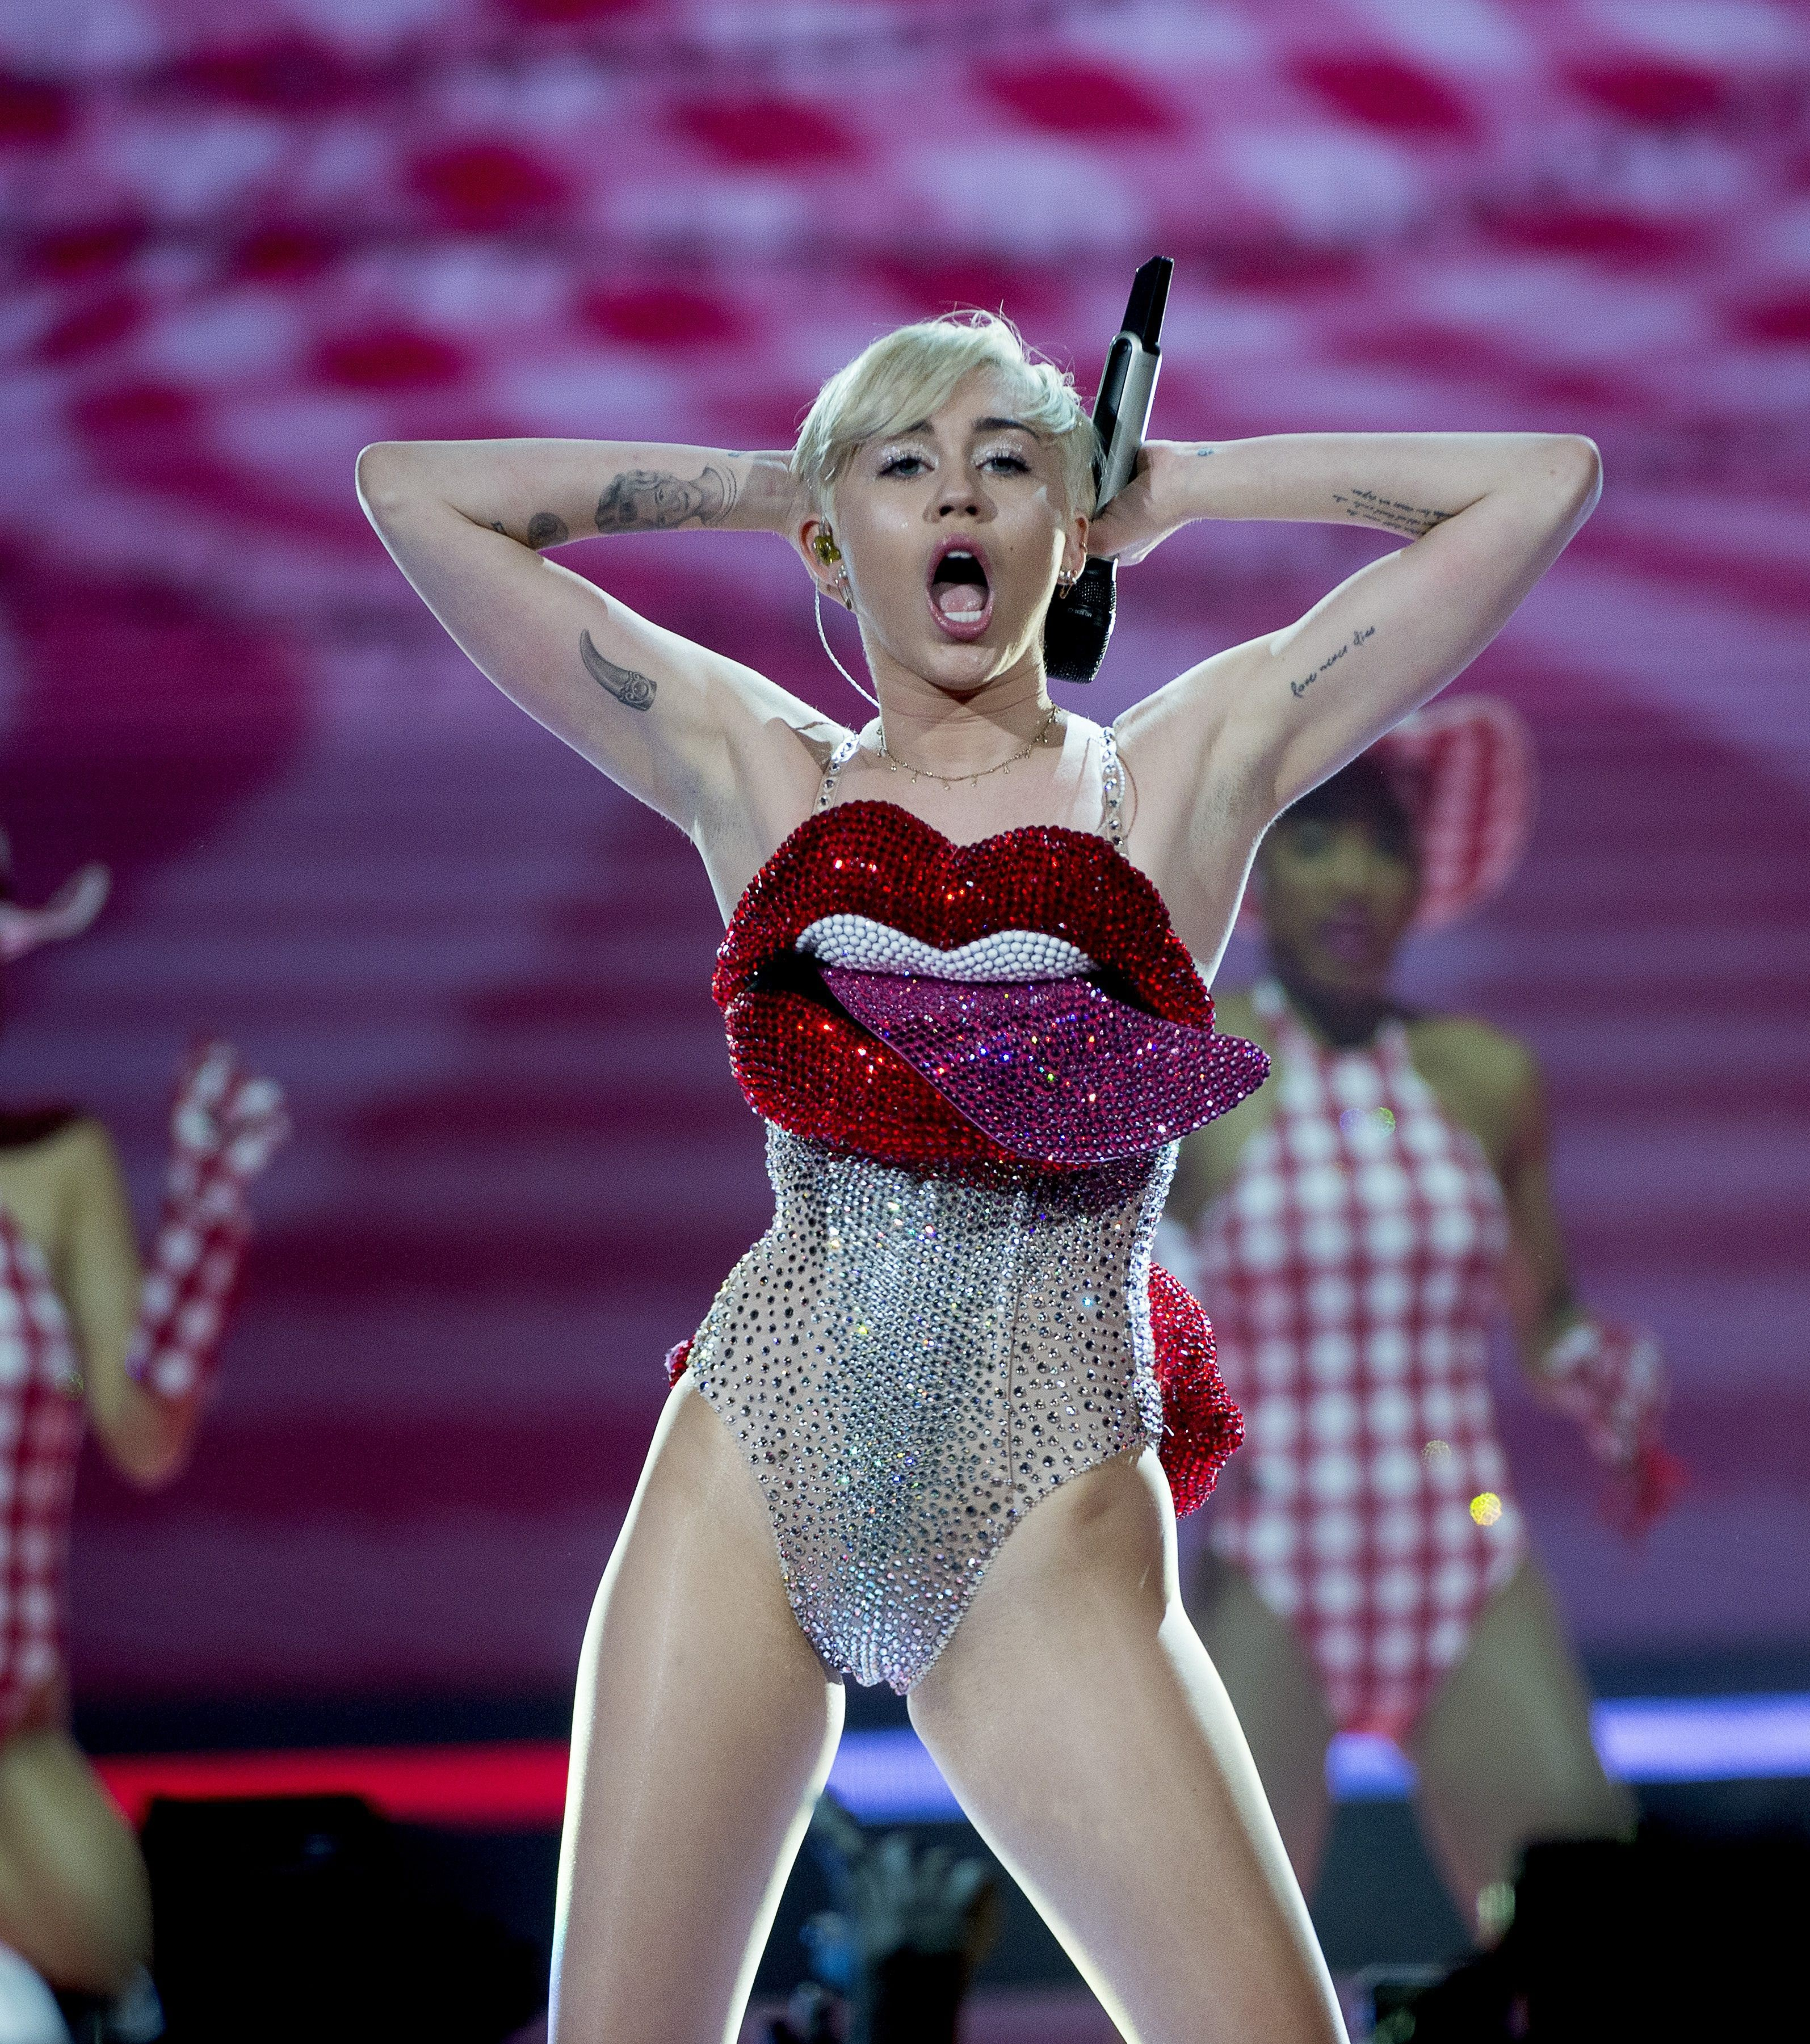 Miley Cyrus Shows Off Armpit Hair Makes Me Like Her More In The